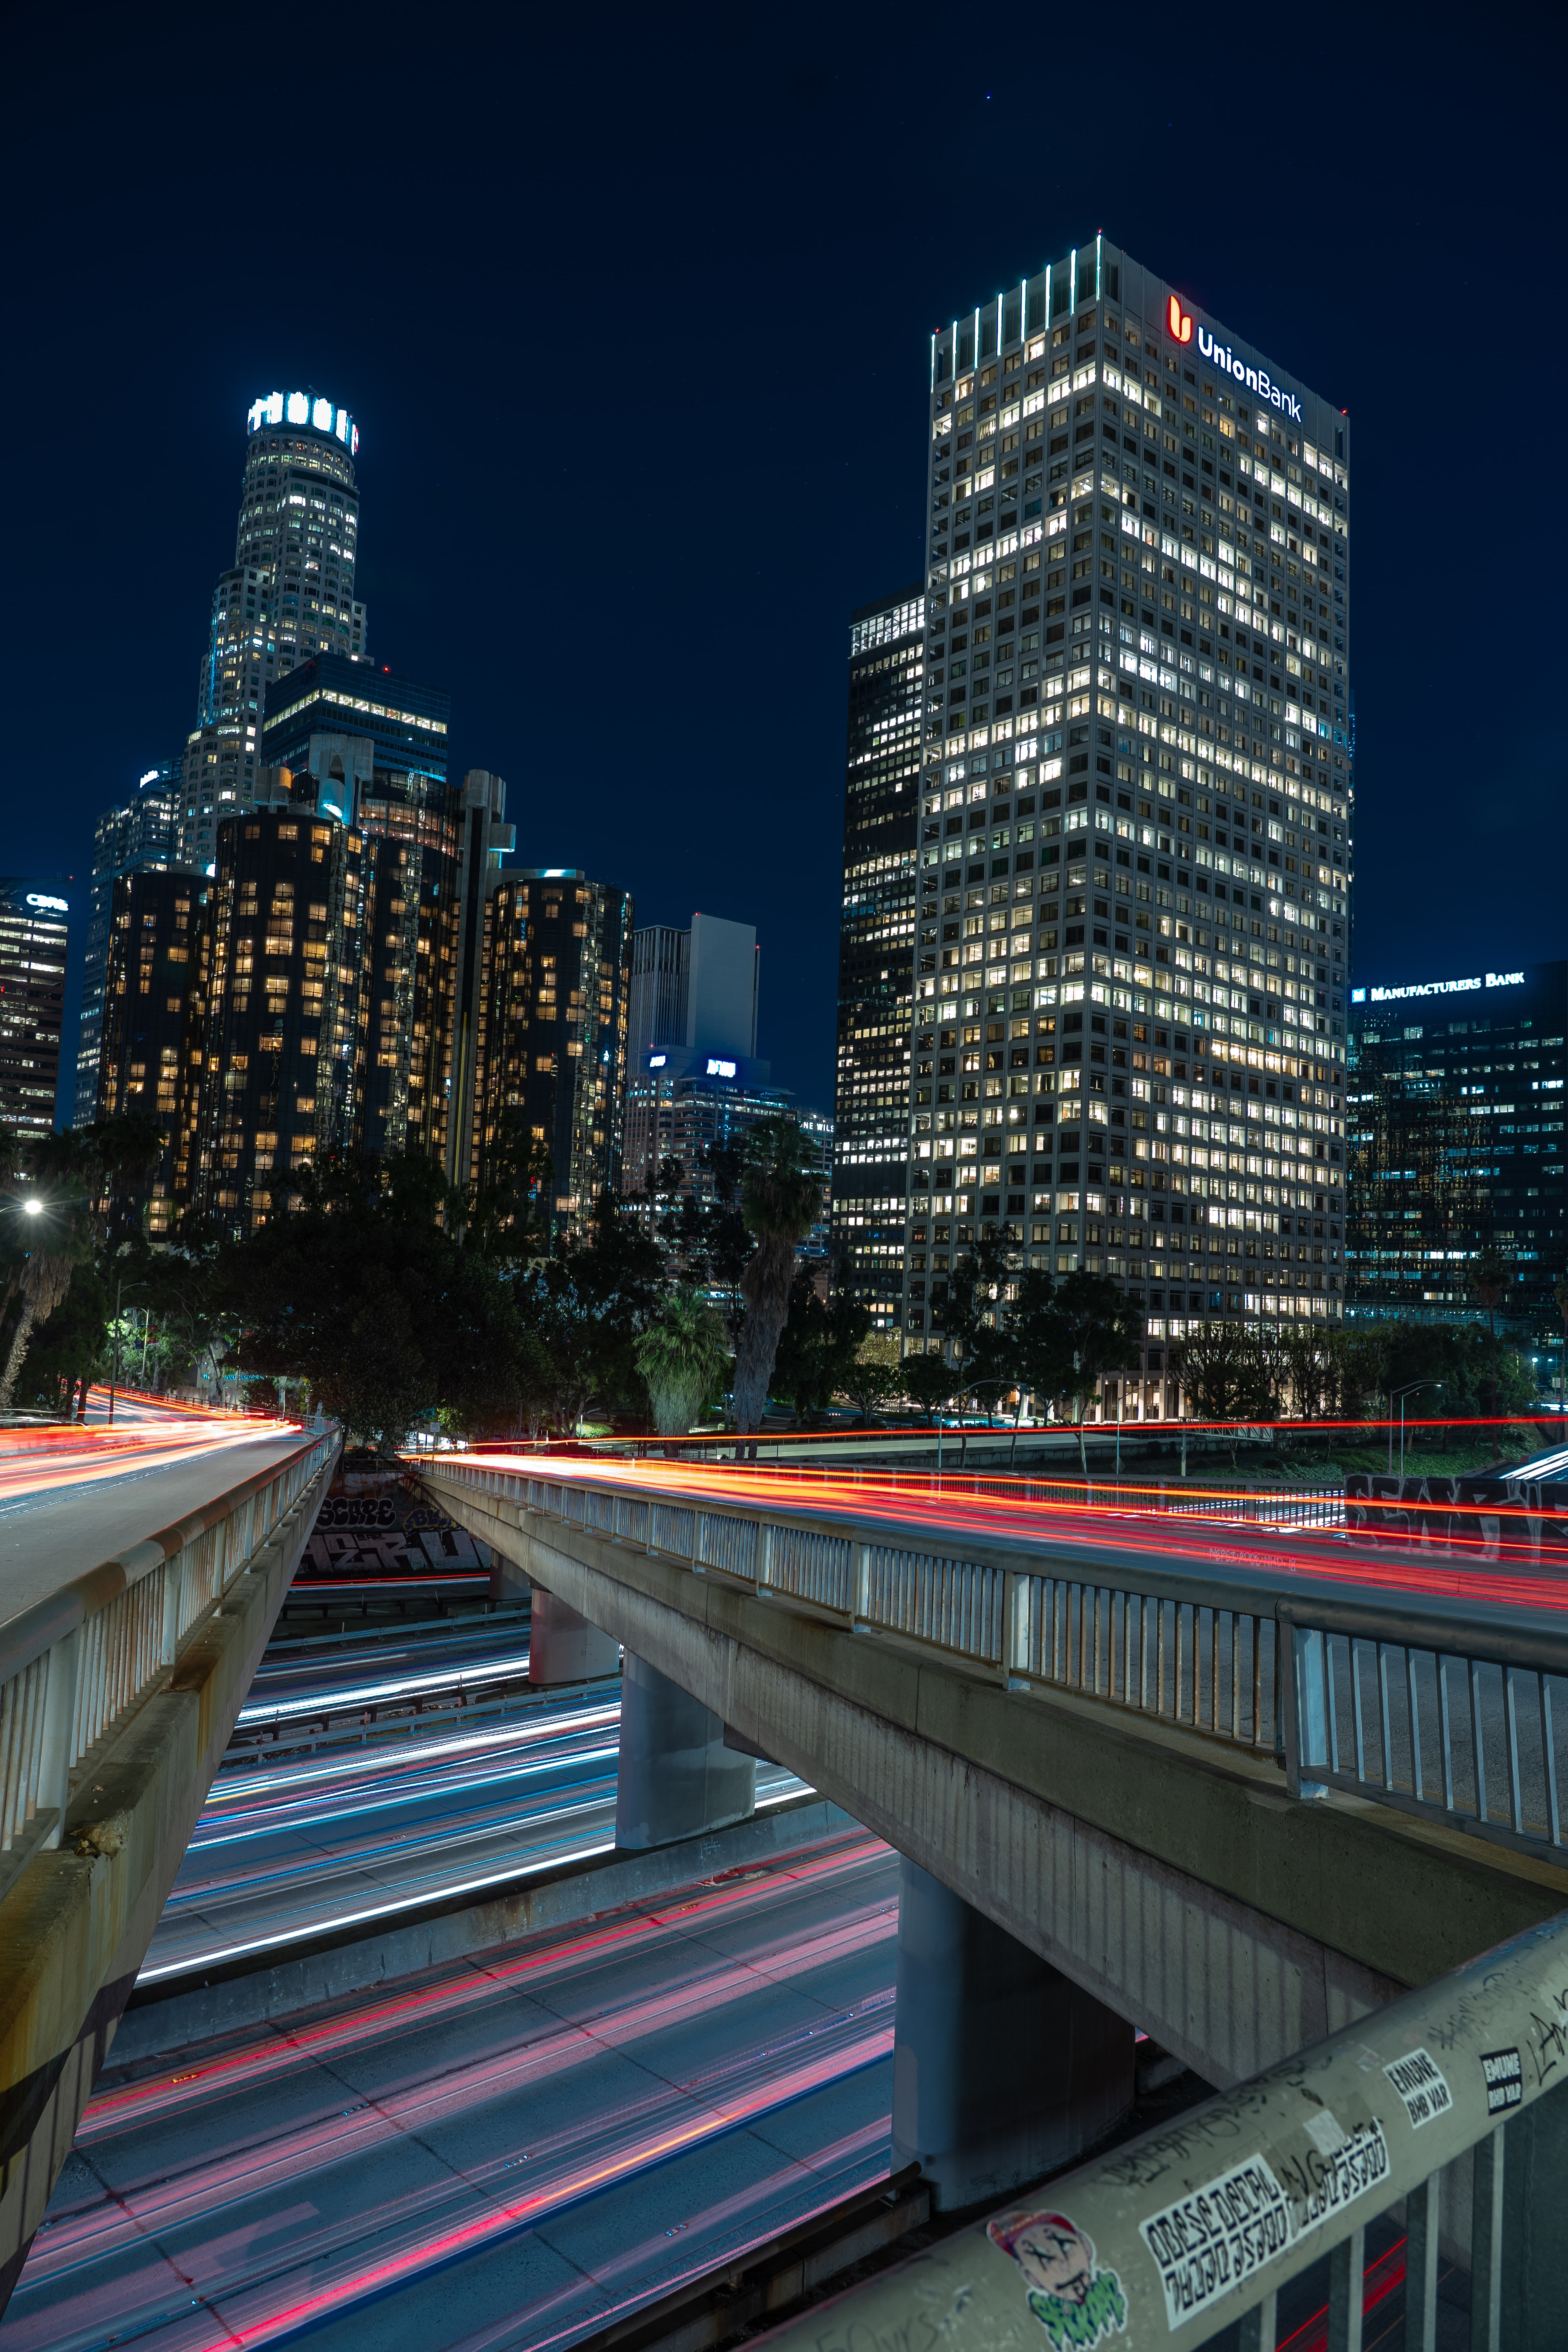 timelapse photography of buildings